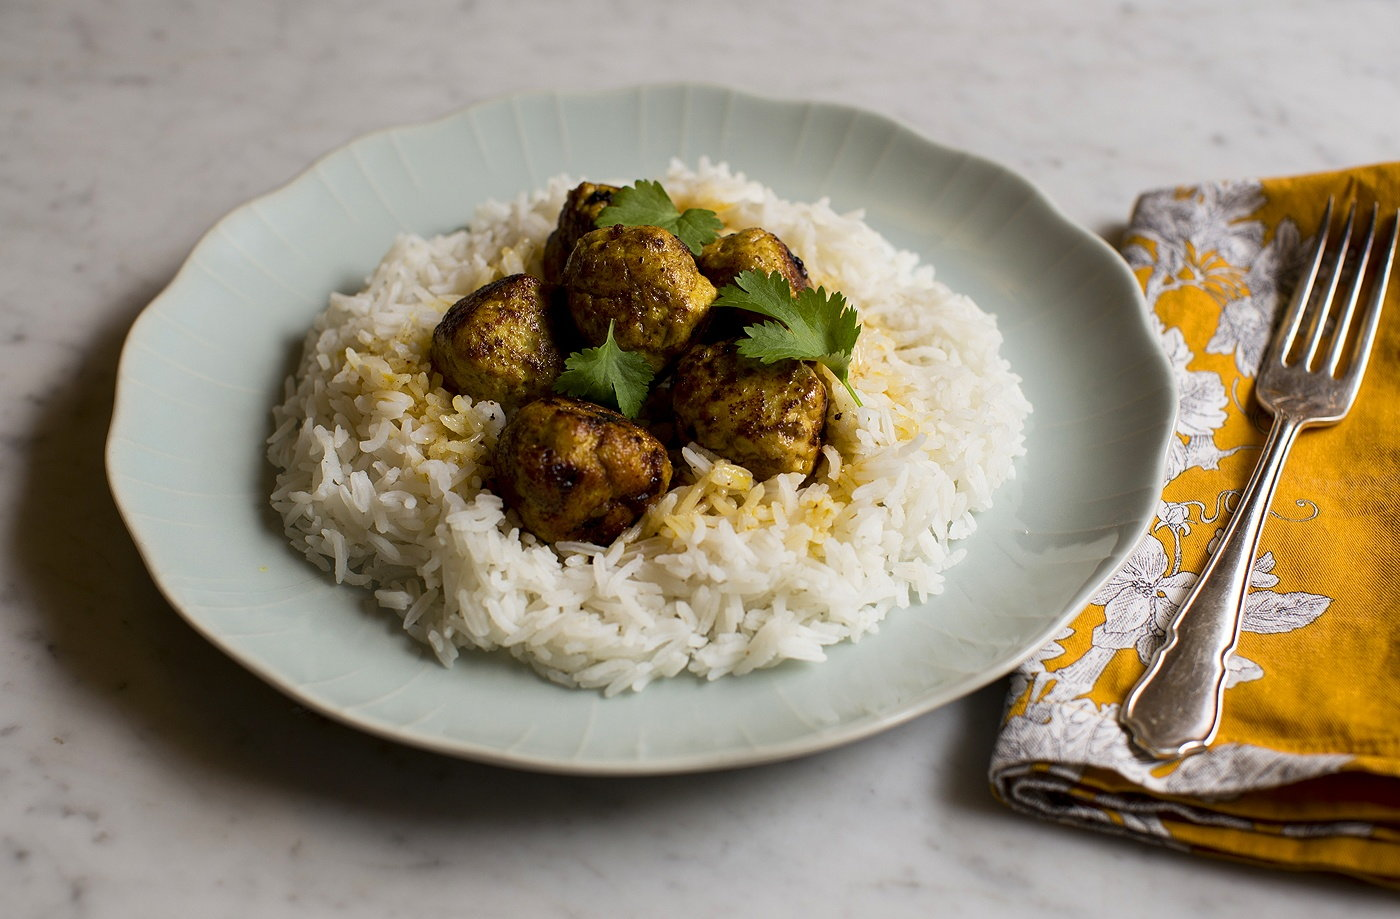 Chicken curry meatballs recipe